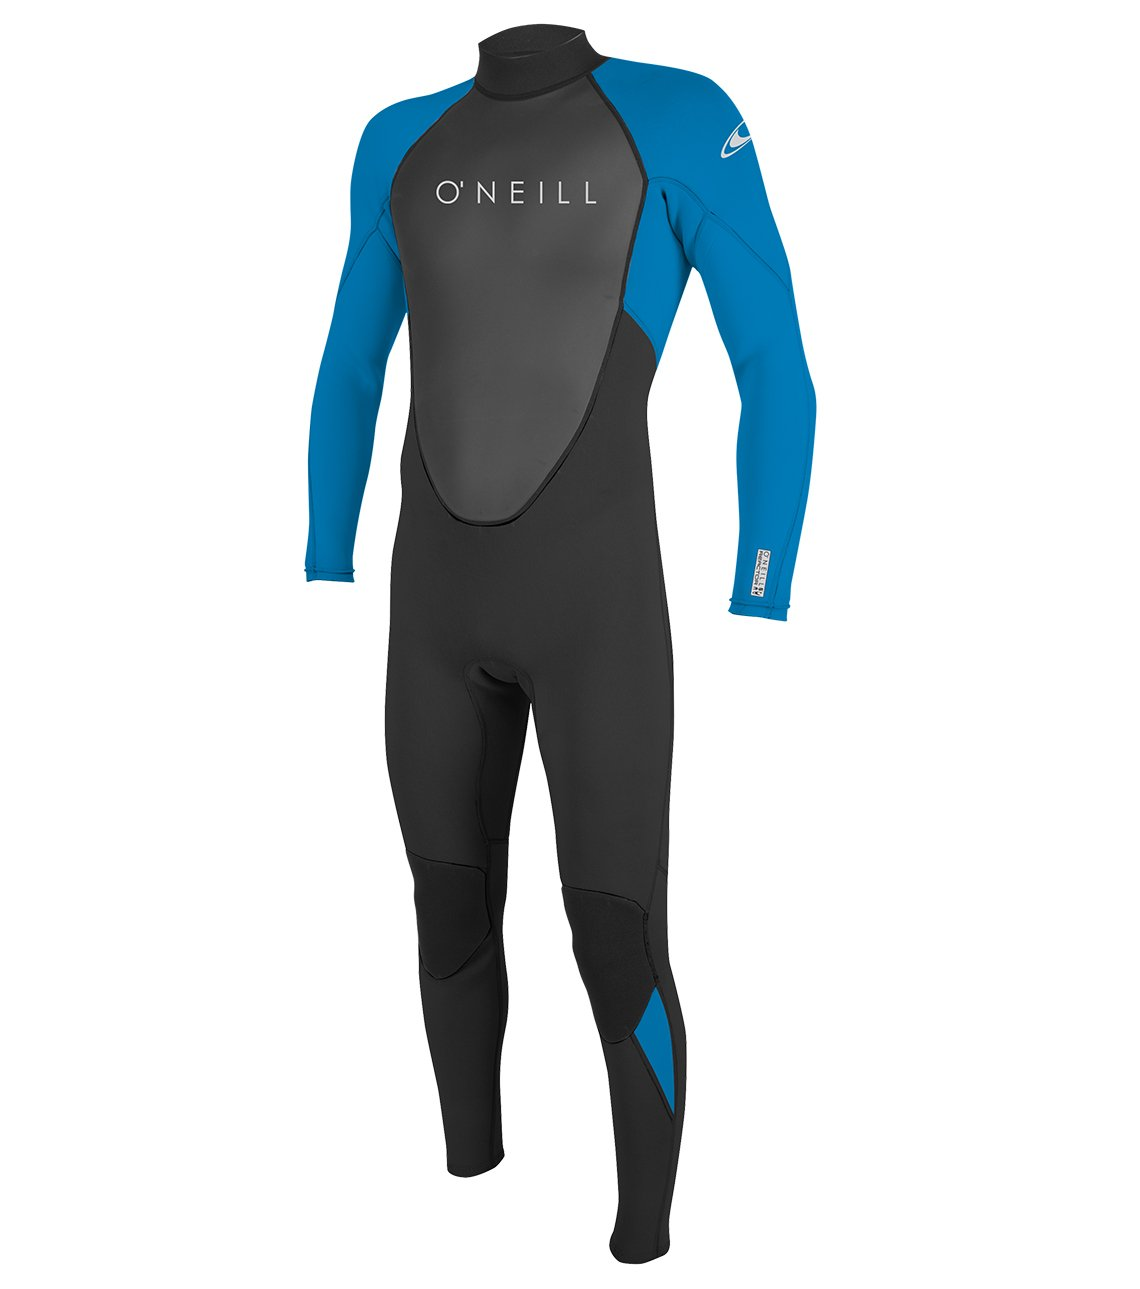 O'Neill Men's Reactor II 3/2mm Back Zip Full Wetsuit, Black/Ocean, Medium by O'Neill Wetsuits (Image #1)